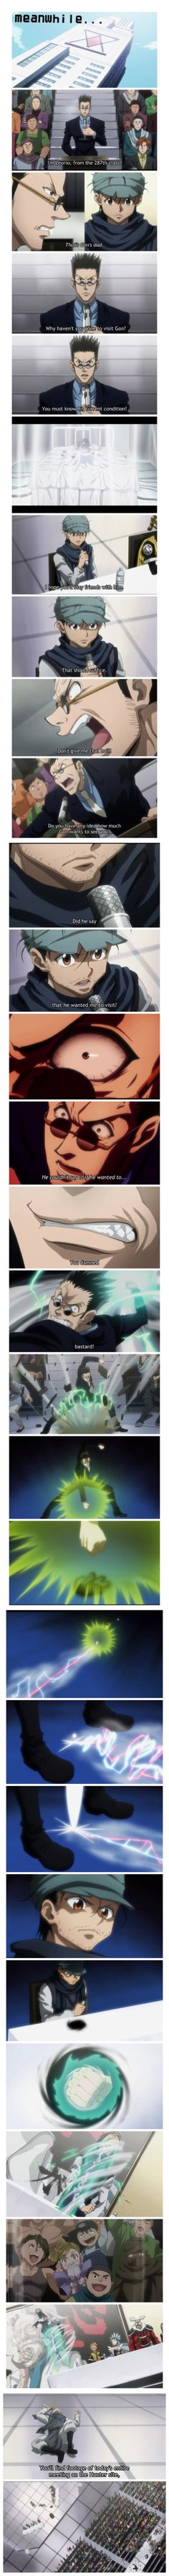 Leorio's back! And kicks Ging's ass!